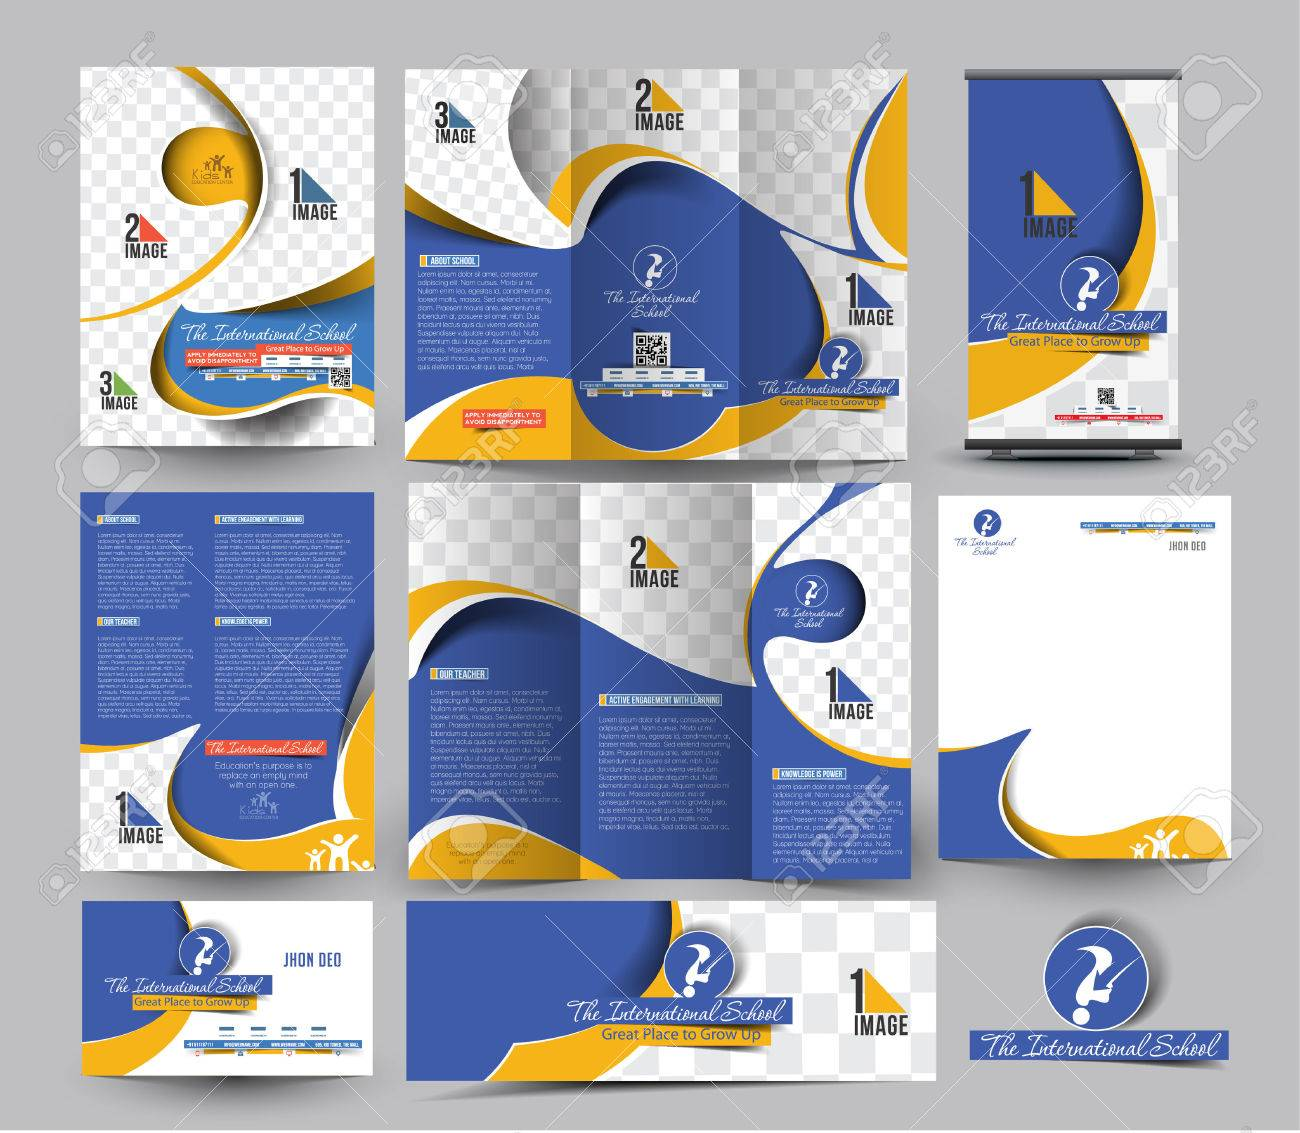 School Business Stationery Set Template - 41833226